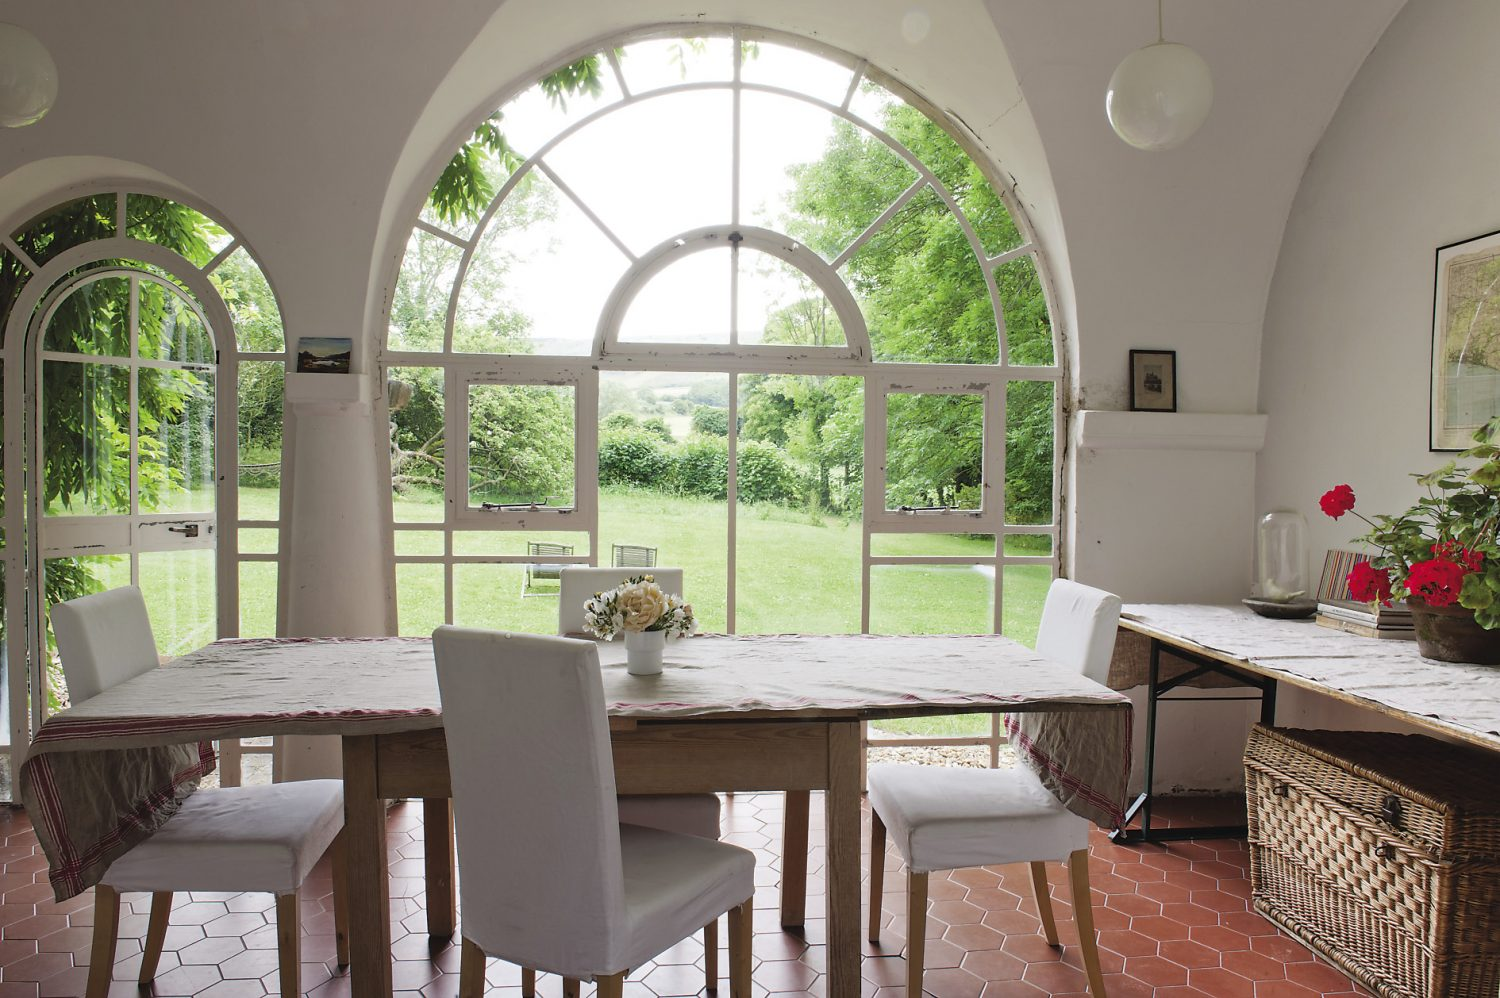 The library wing was commissioned by Maynard Keynes, and his architect, George Kennedy designed a building that extended from the existing stables and is a light-filled, serene space. Arched windows and a glazed door look out towards the garden and the South Downs beyond.